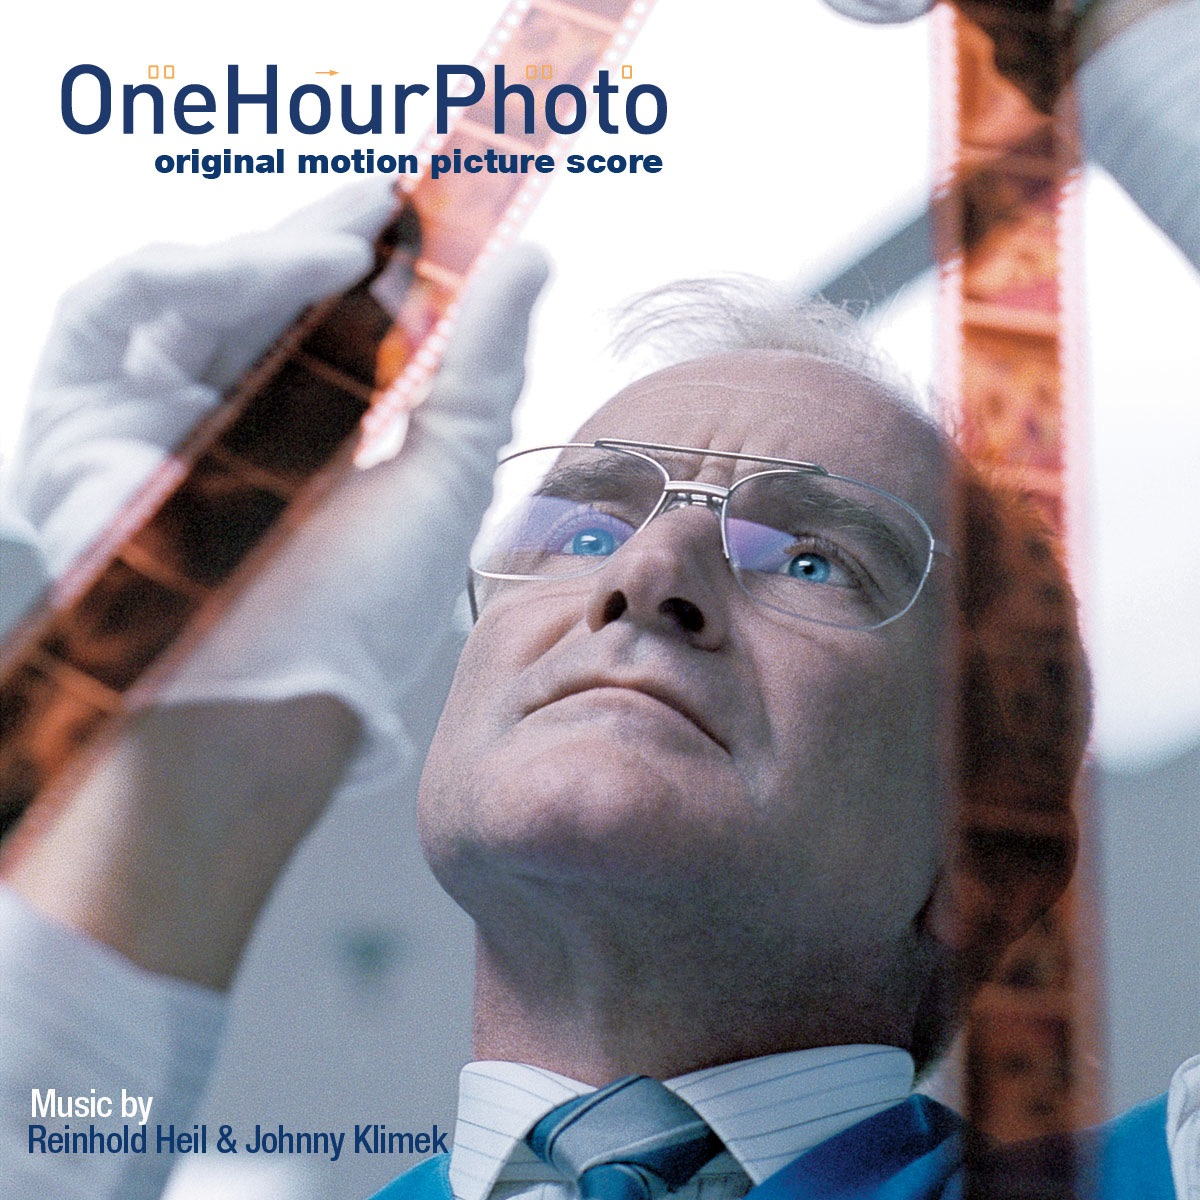 One hour photo pictures